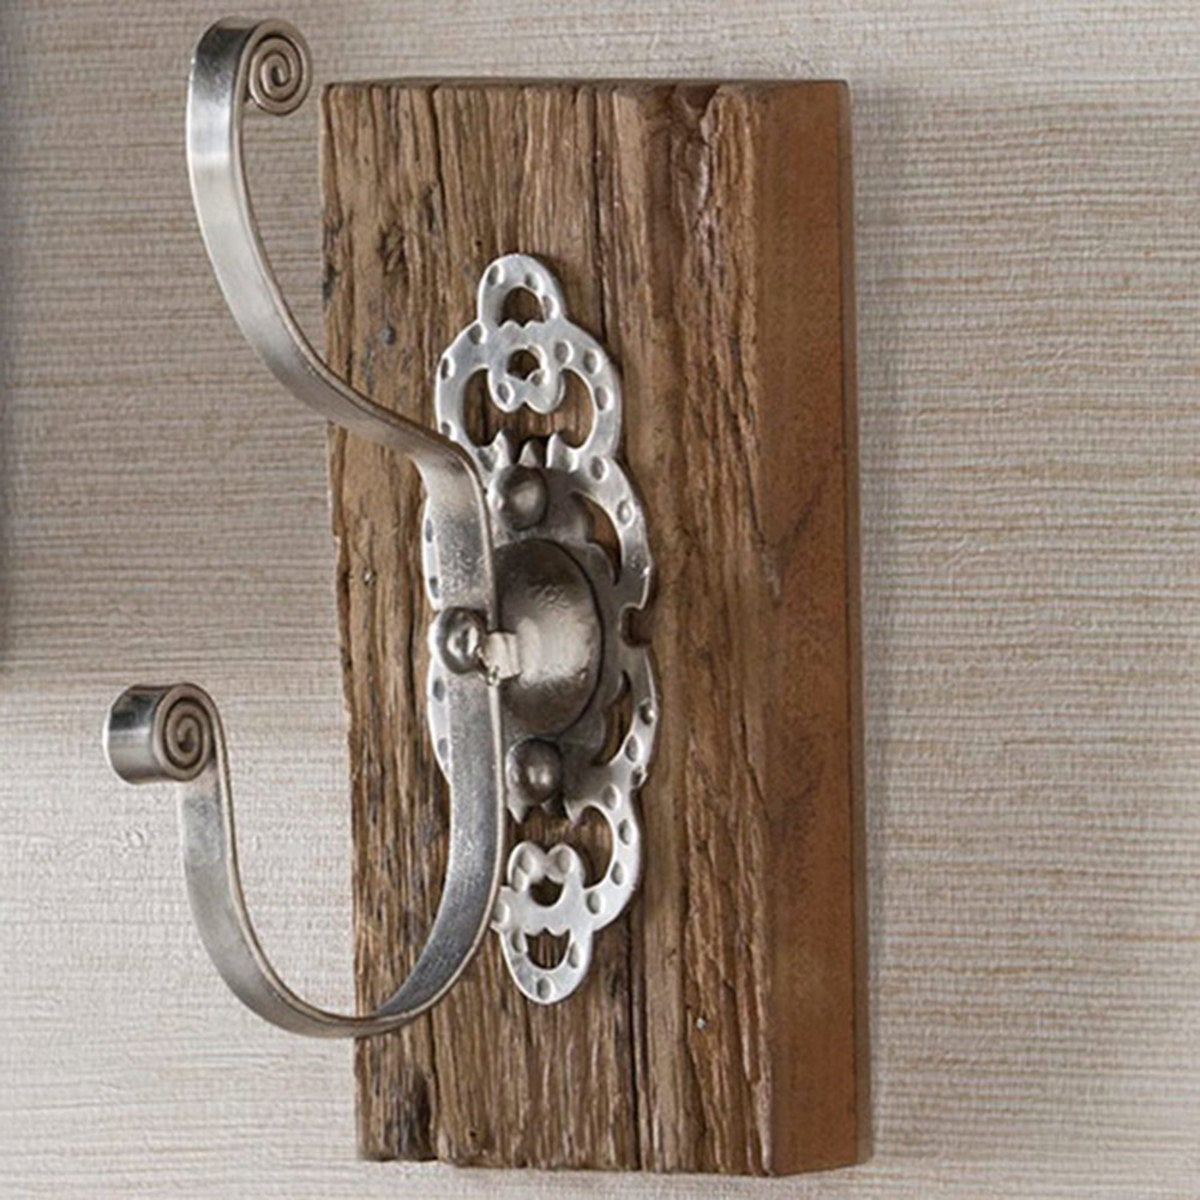 Antiqued Iron and Reclaimed Wood Wall Hook, Set of 2 - Dimpled